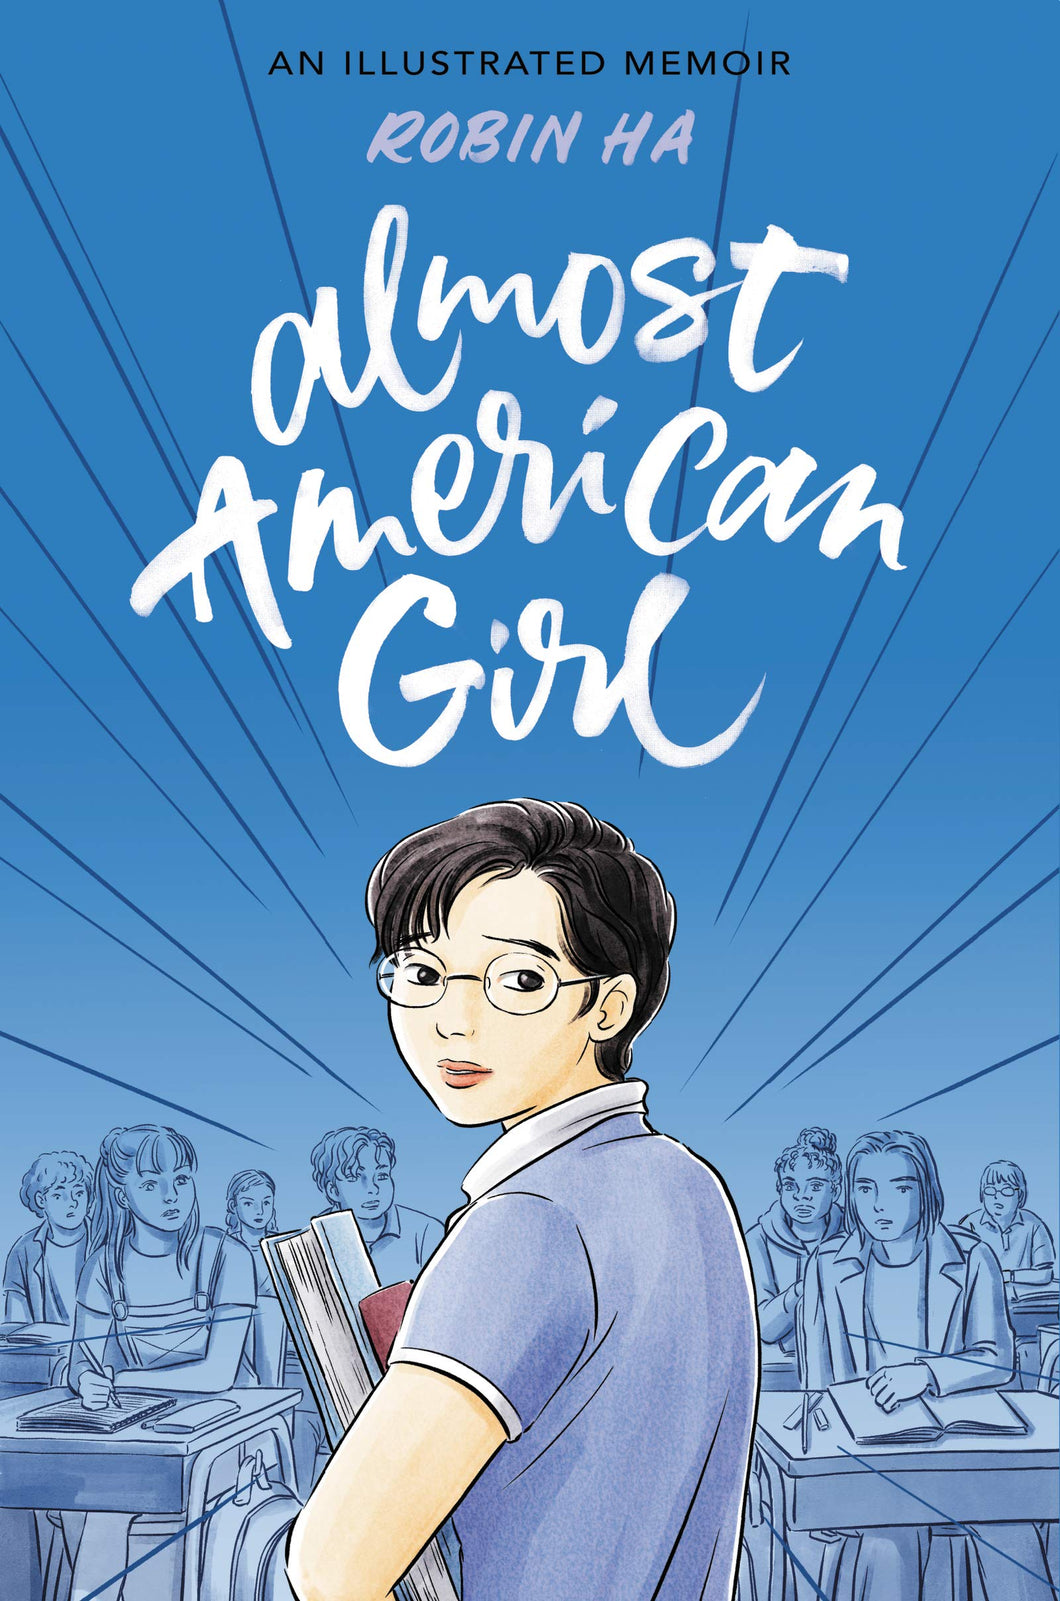 Almost American Girl: An Illustrated Memoir by Robin Ha